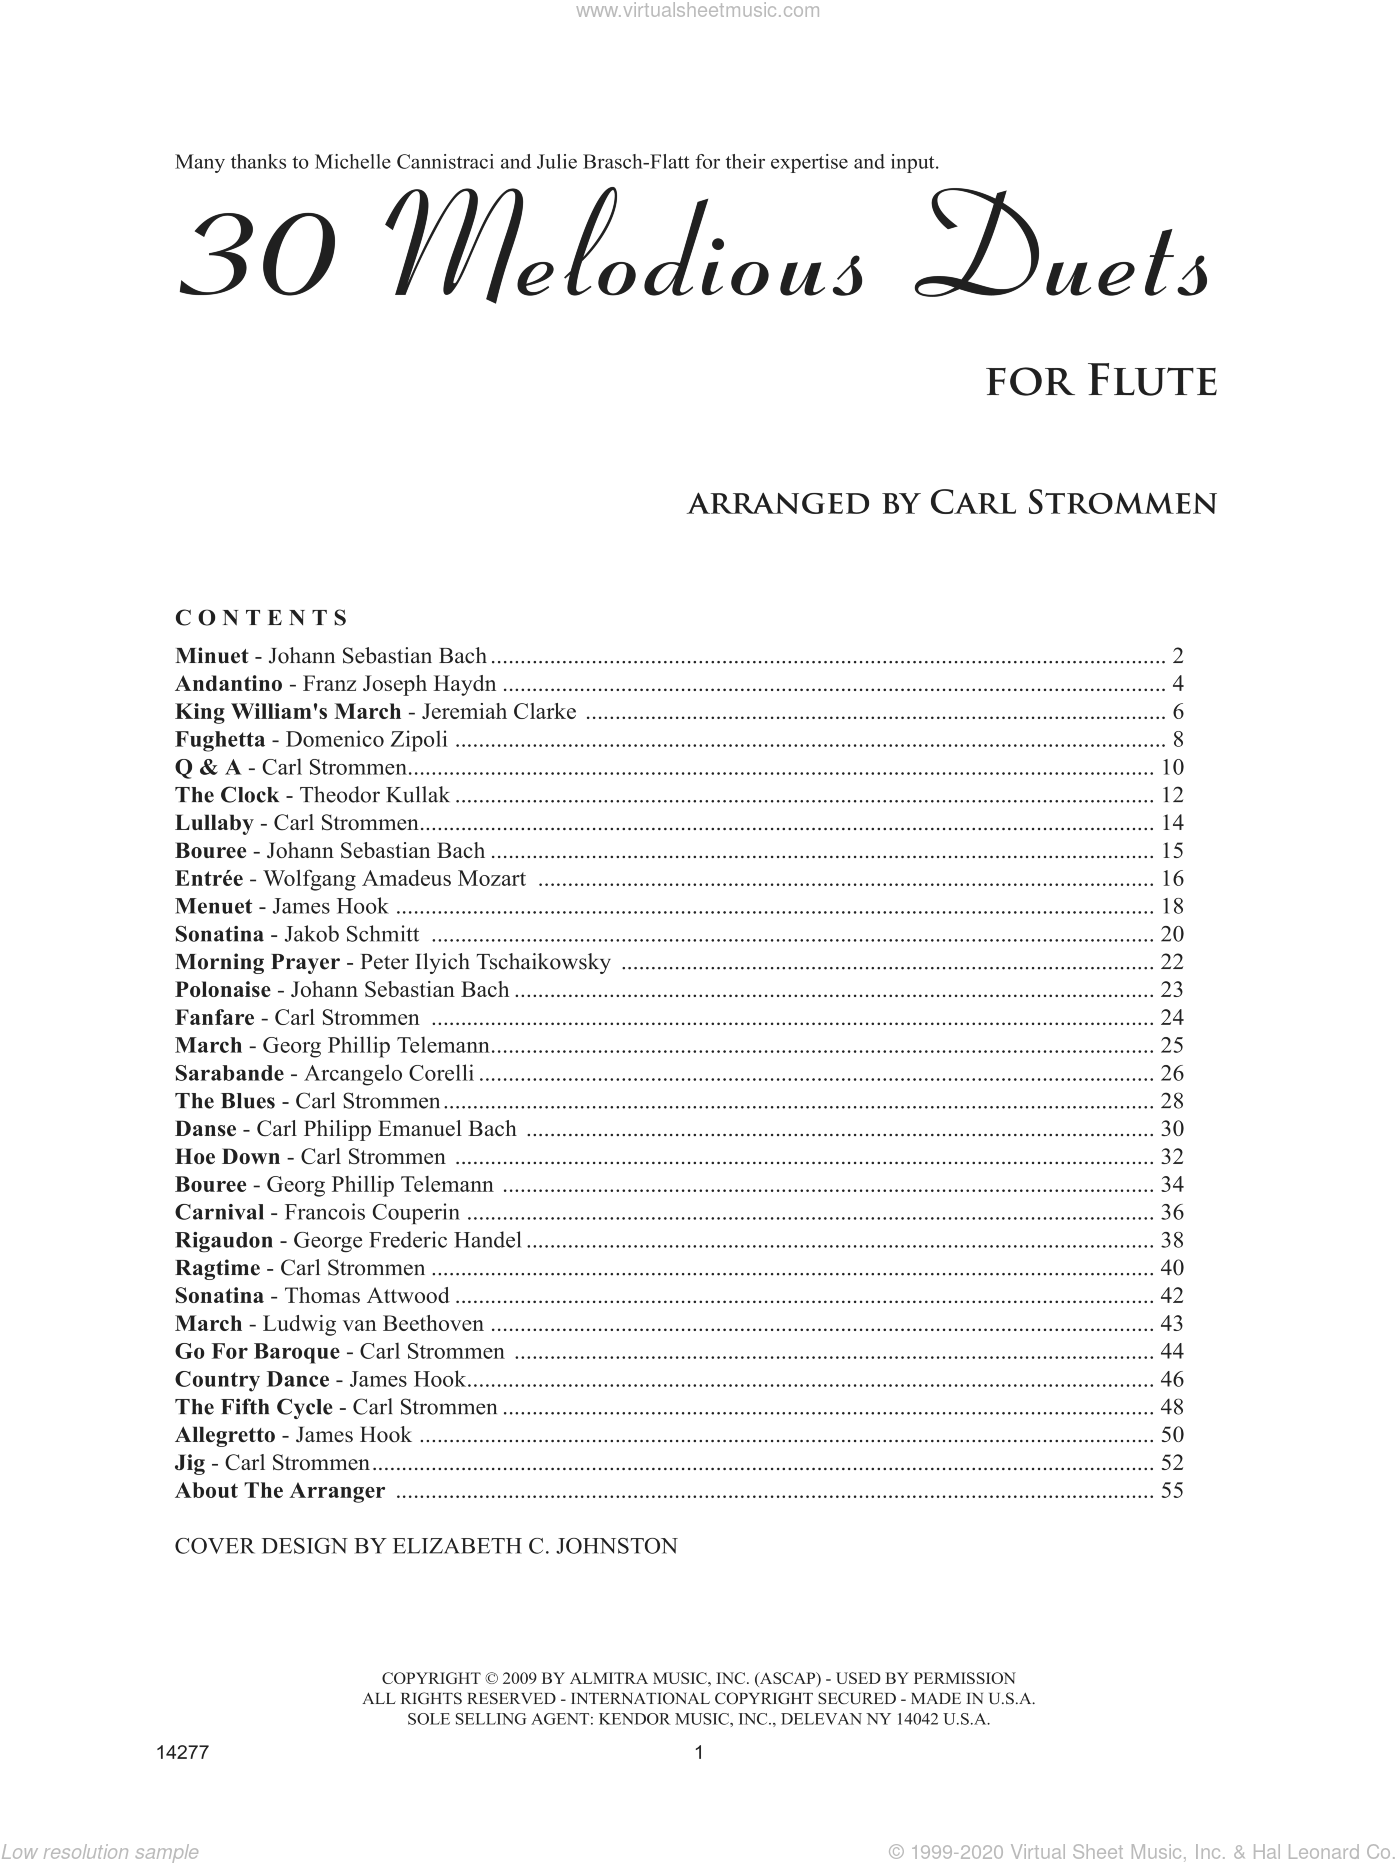 30 Melodious Duets sheet music for two flutes by Carl Strommen. Score Image Preview.